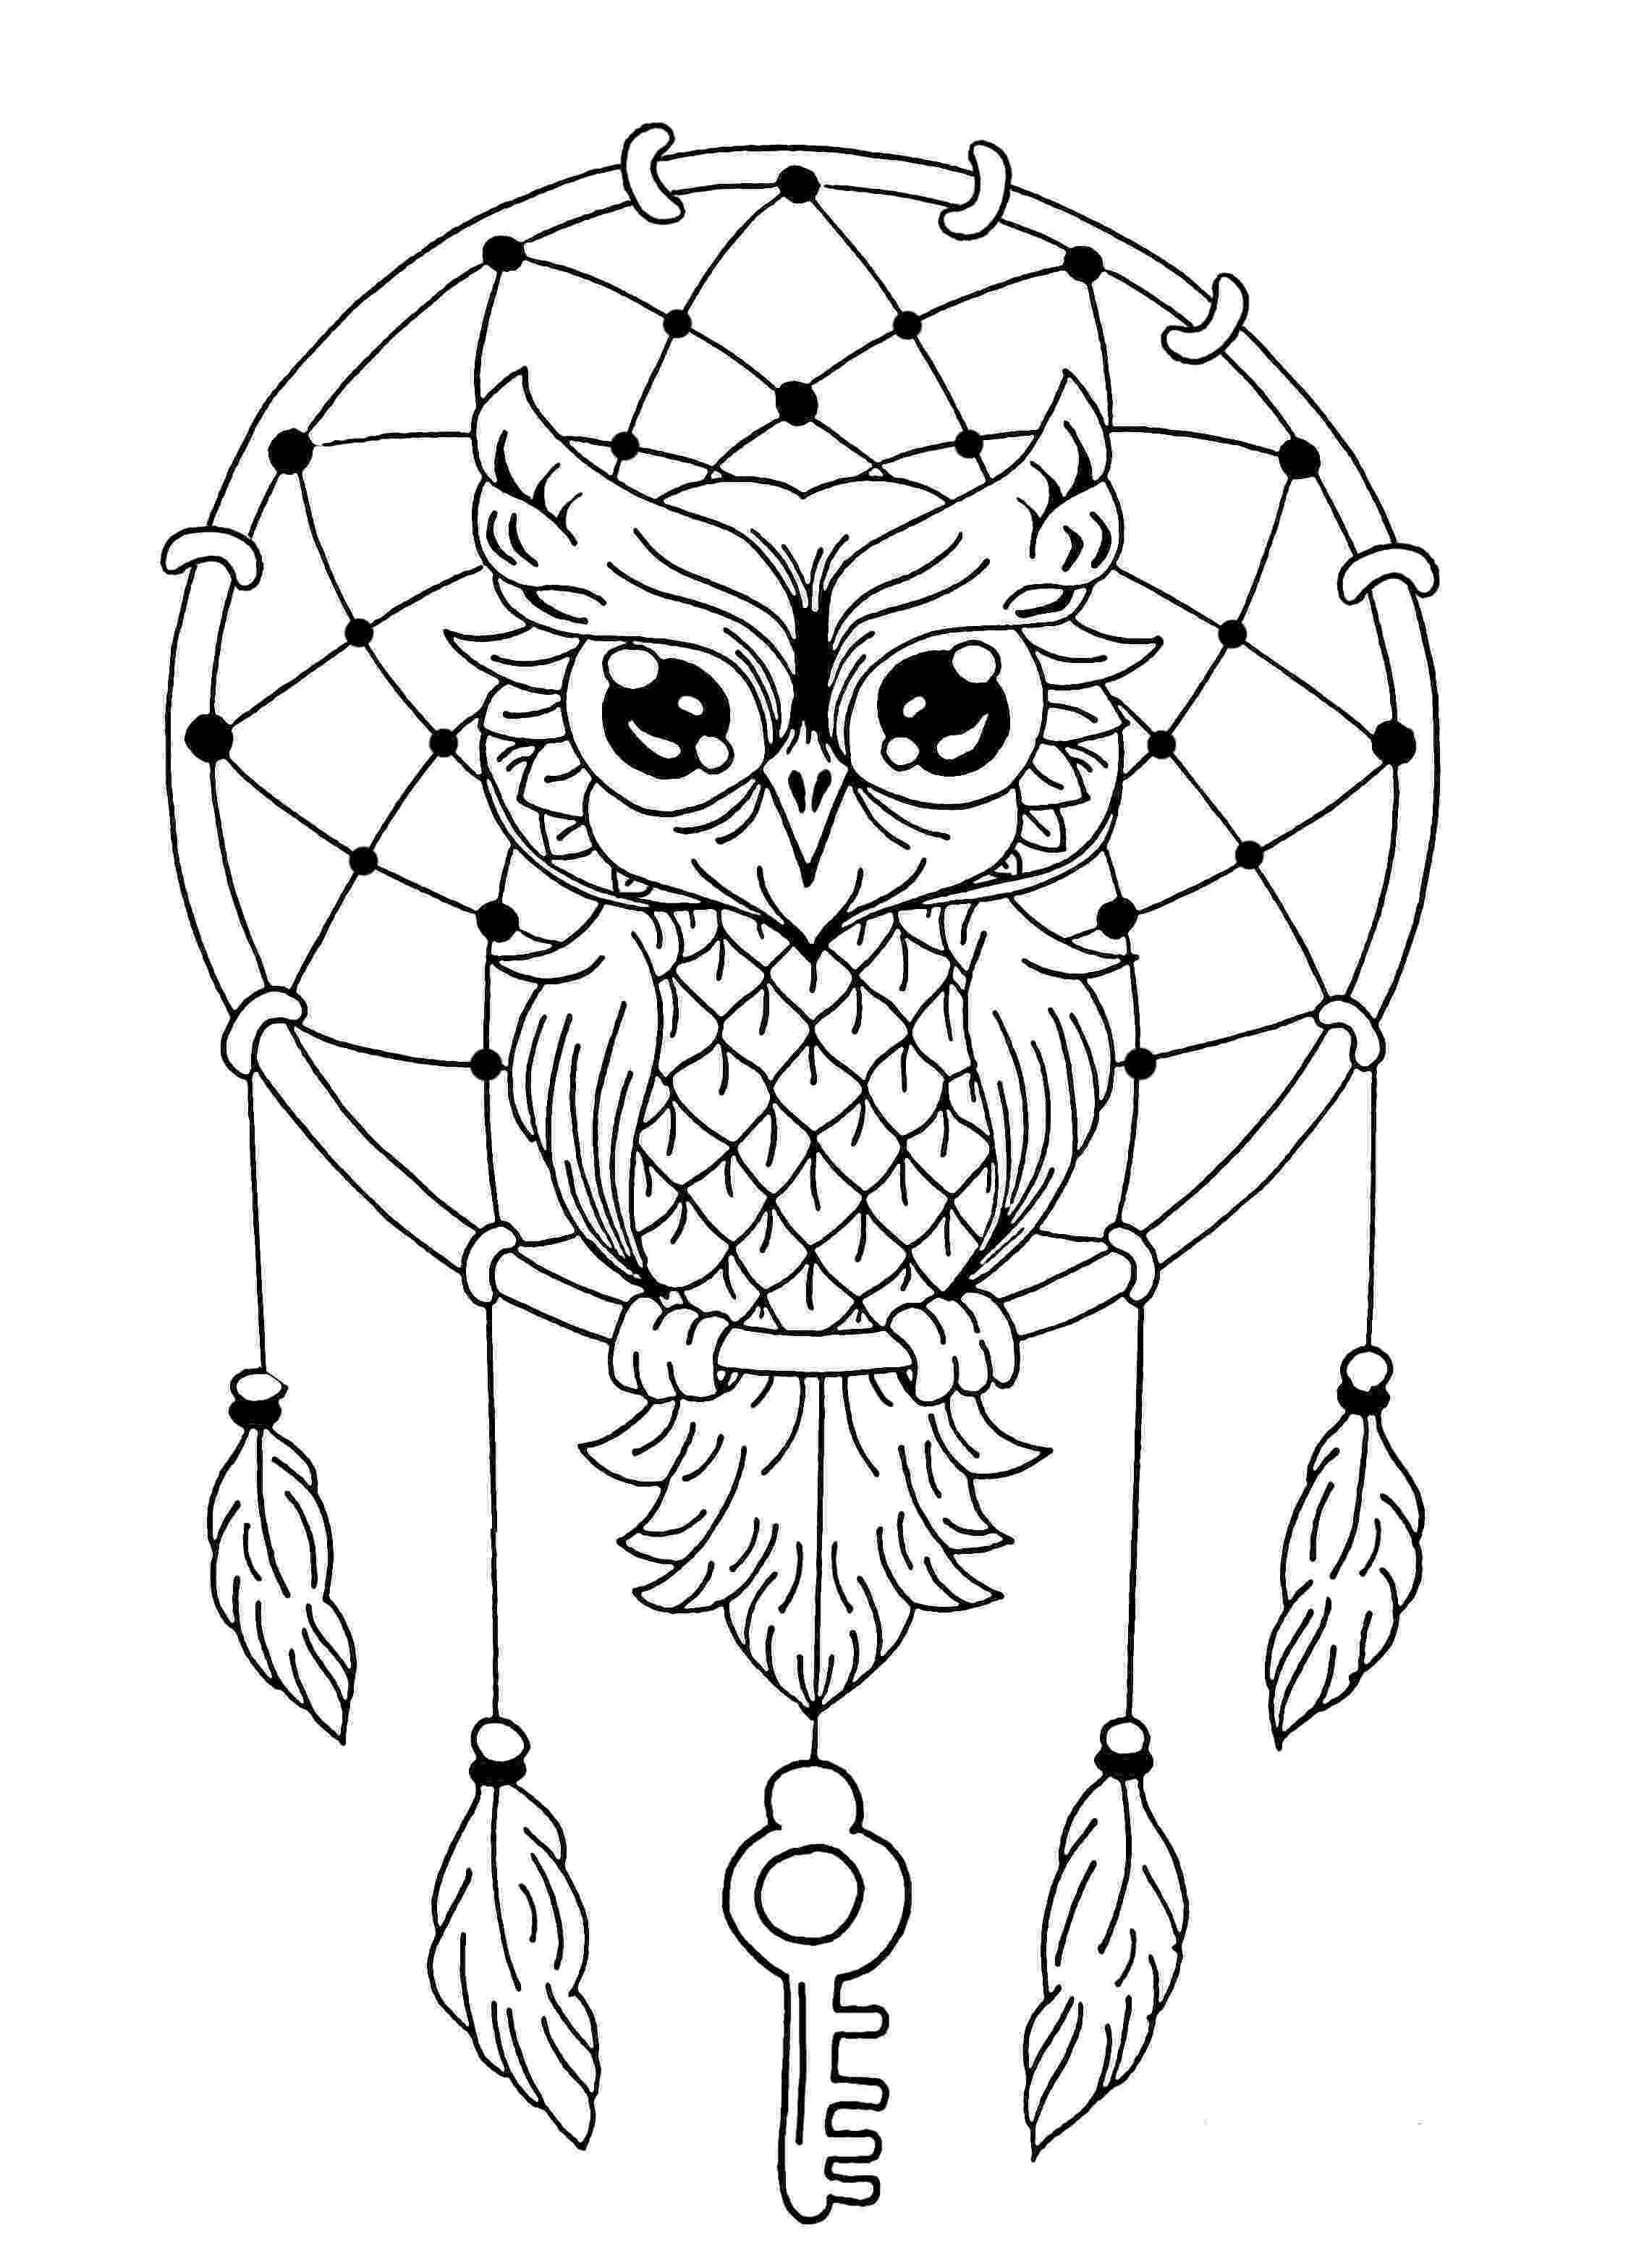 coloring pages for adults with owls owl dreamcatcher owls adult coloring pages pages coloring owls for with adults